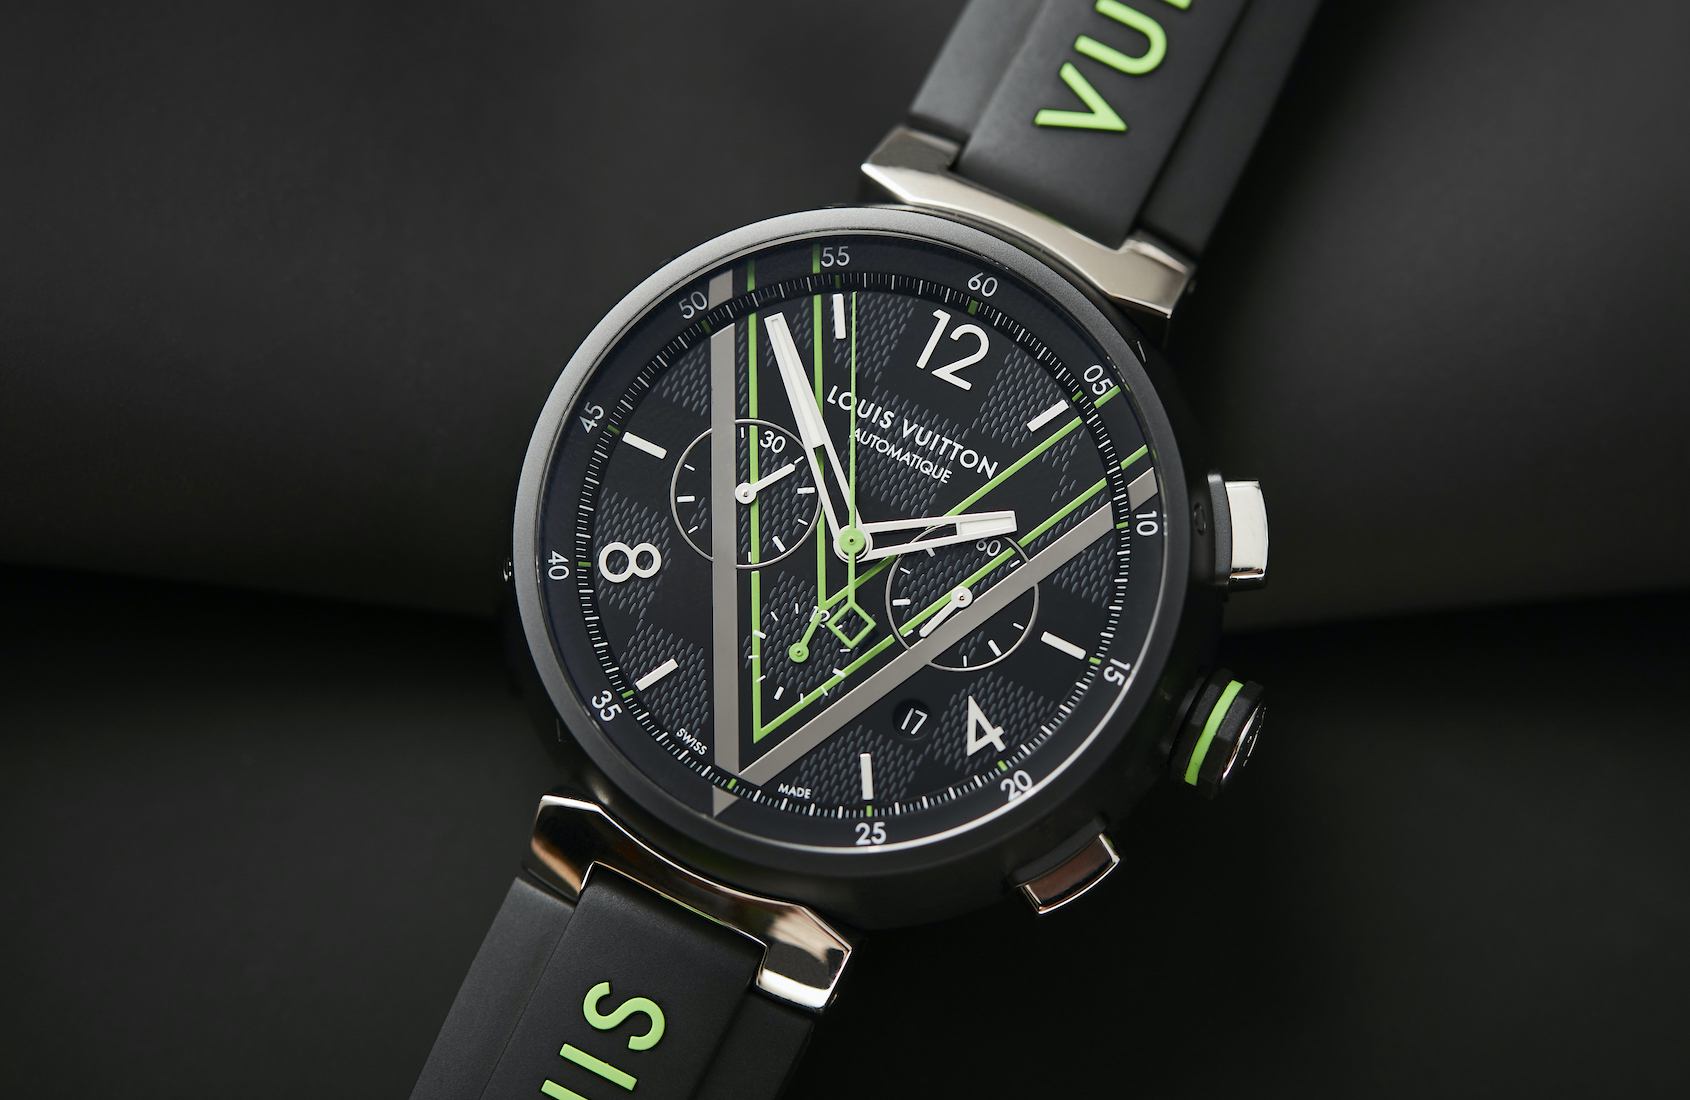 HANDS-ON: The Louis Vuitton Tambour Damier Graphite Race Chronograph brings green lasers to a gun fight